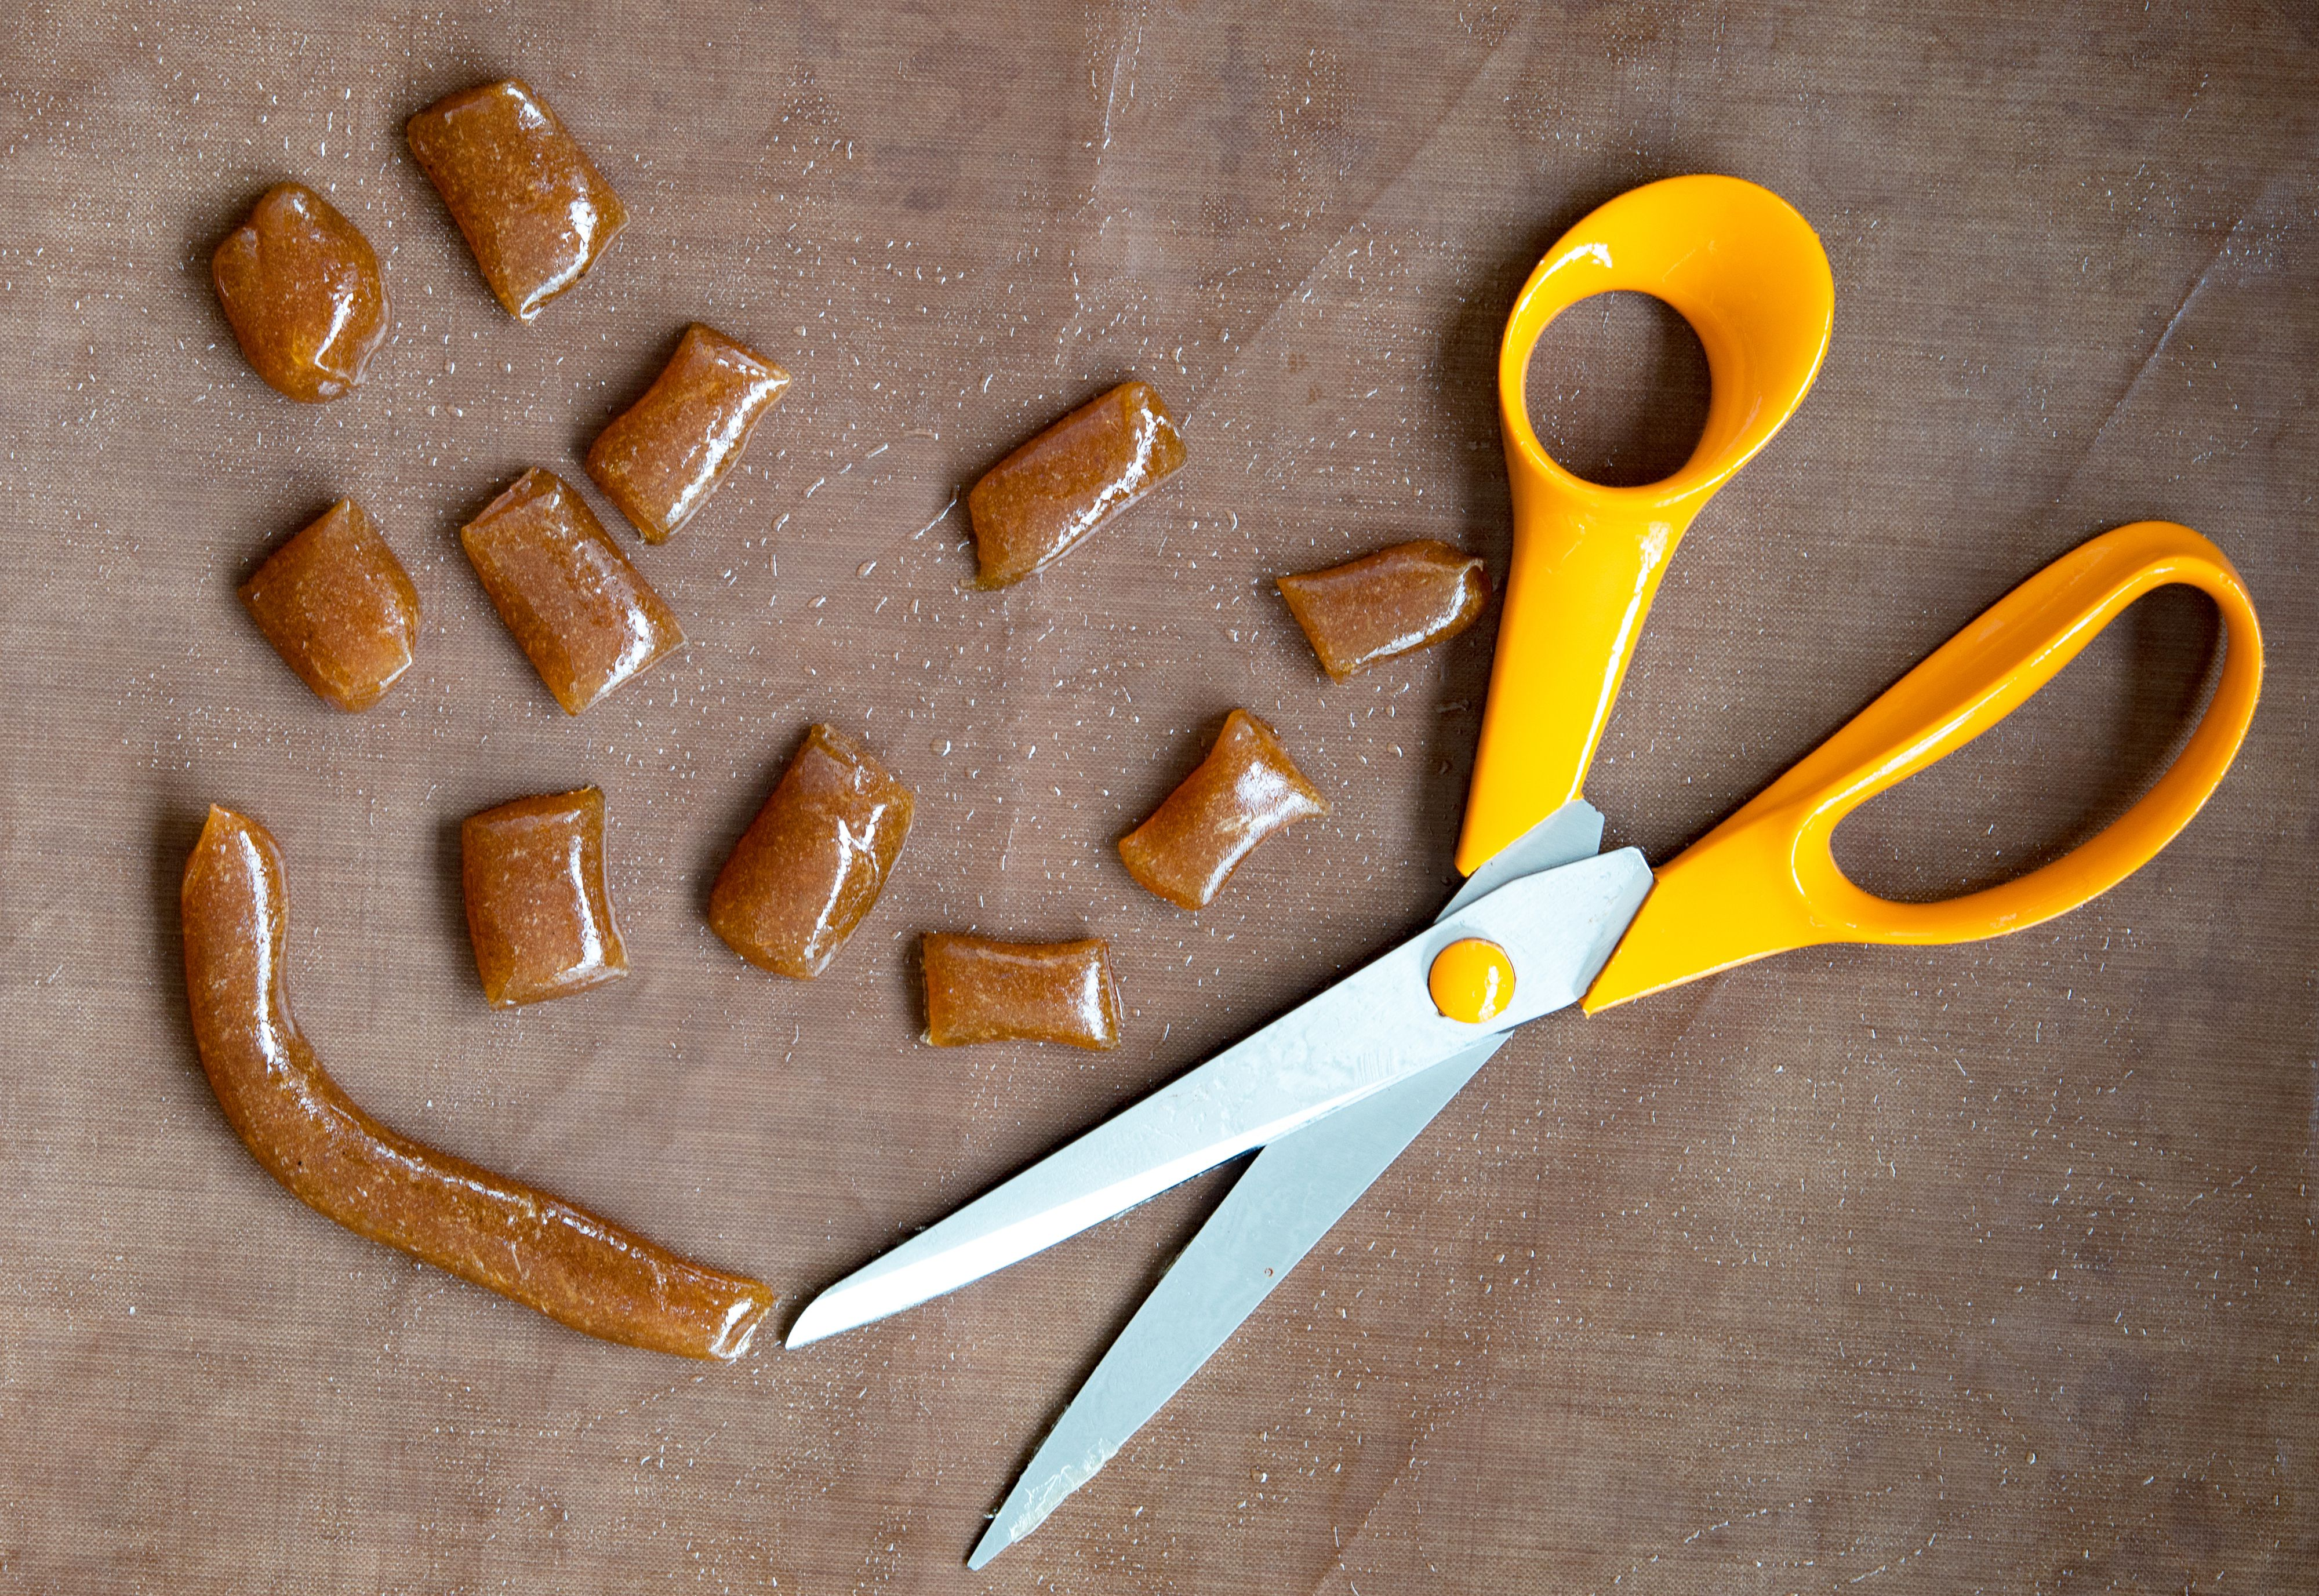 How to Make Taffy Candy Recipe: A Step-by-Step Guide